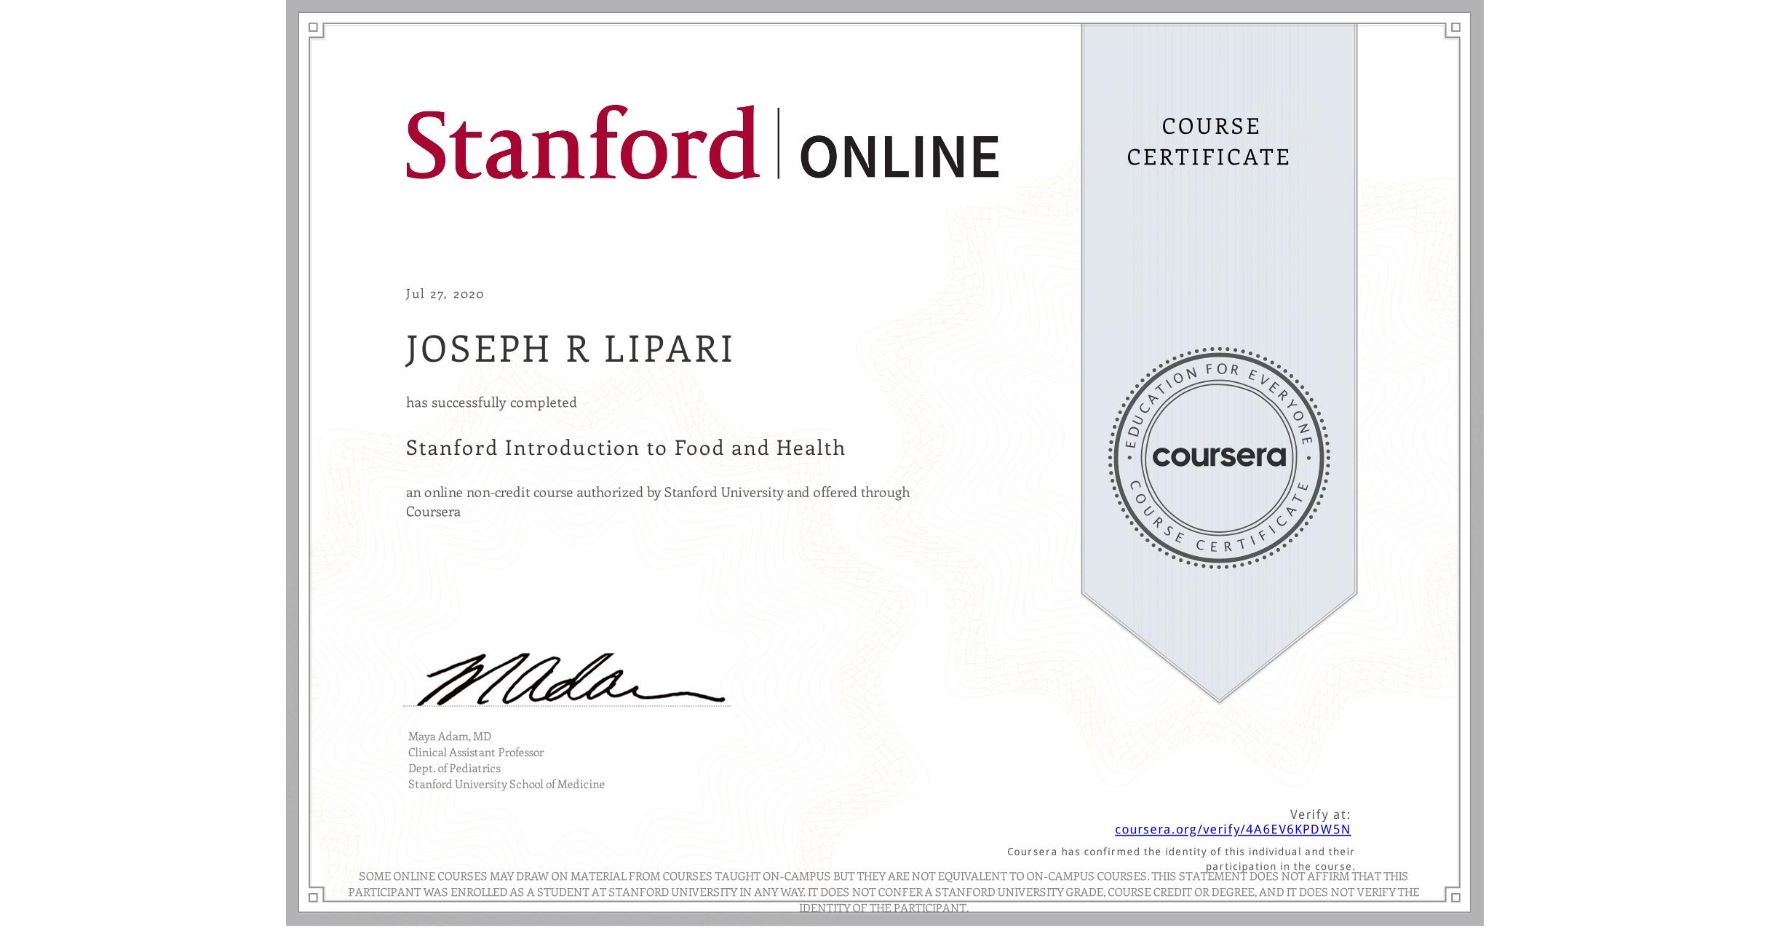 View certificate for JOSEPH R  LIPARI, Stanford Introduction to Food and Health, an online non-credit course authorized by Stanford University and offered through Coursera